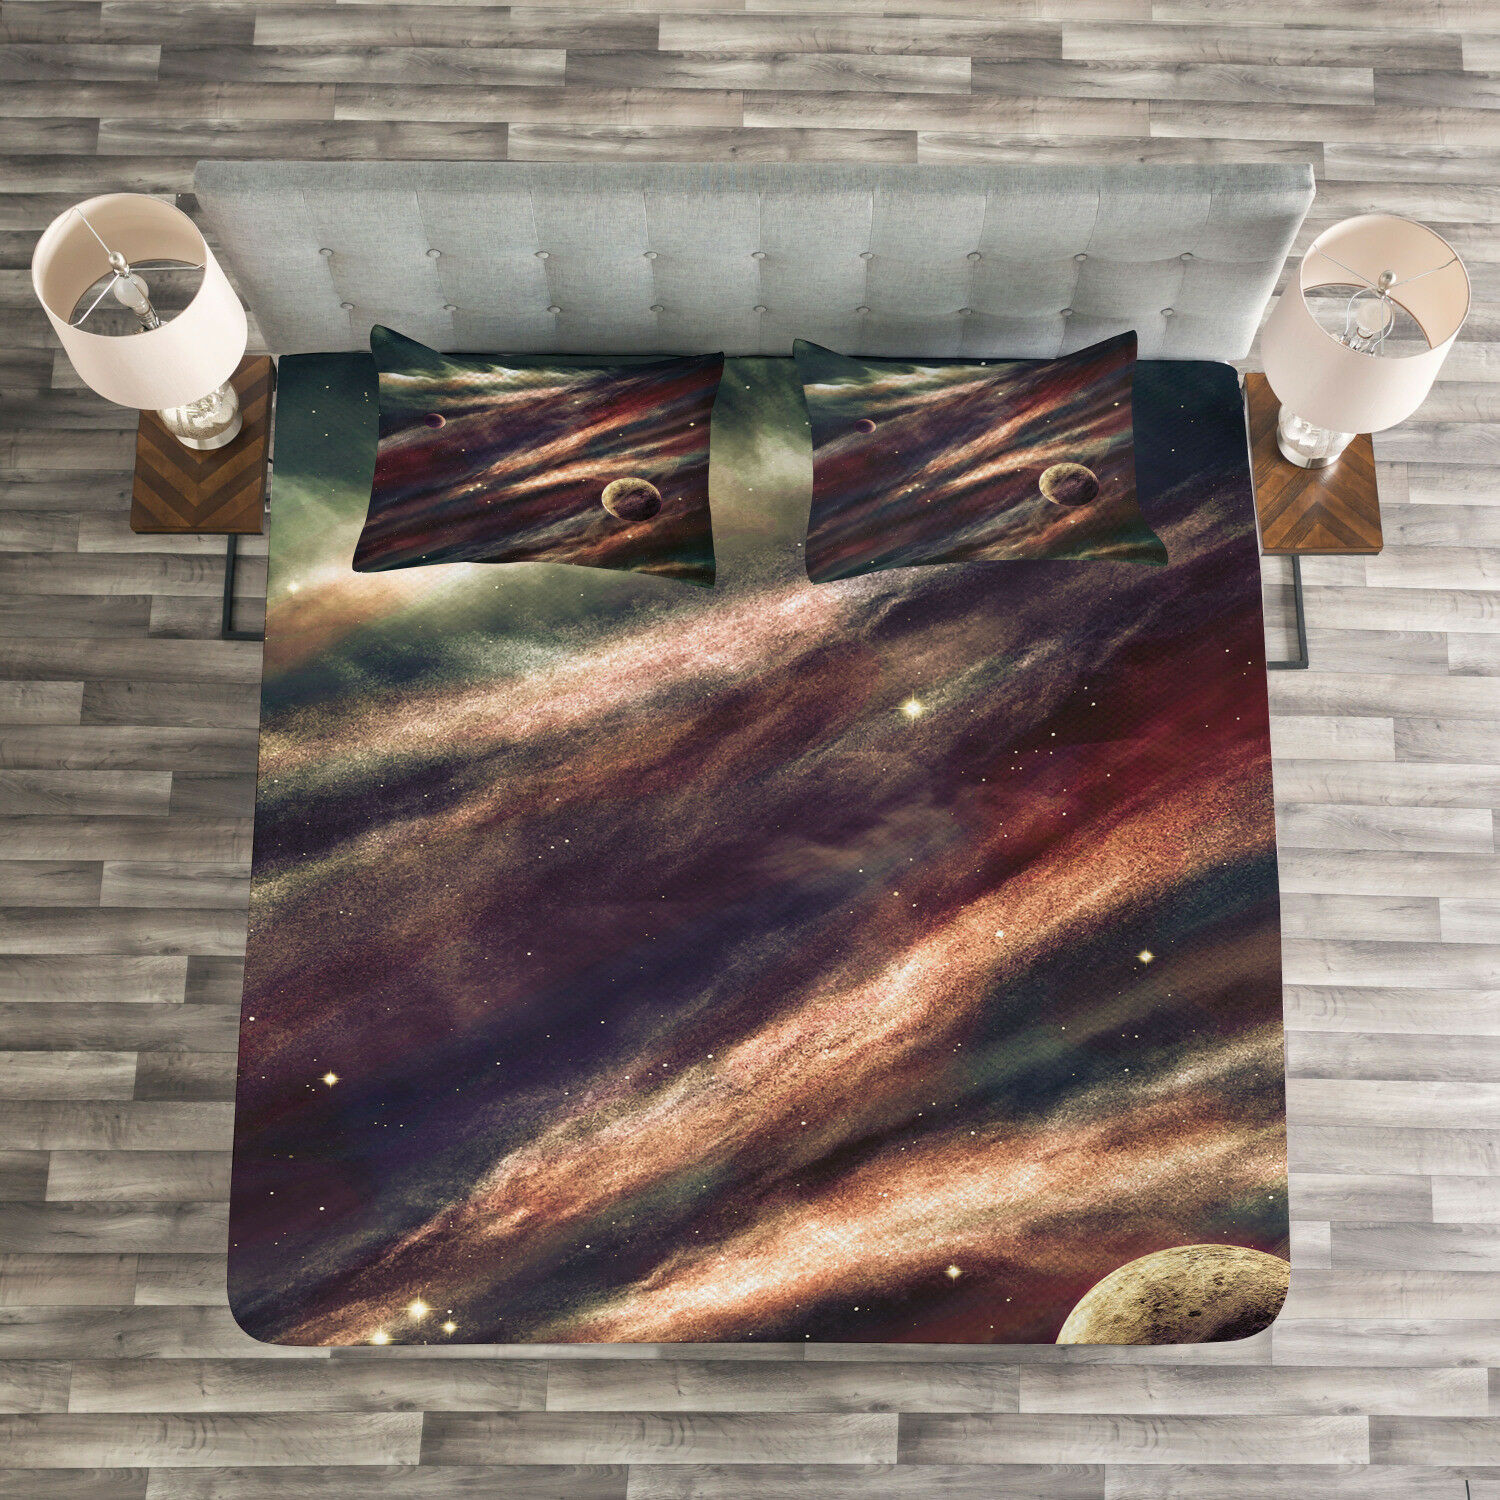 Outer Space Quilted Bedspread & Pillow Shams Set, Nebula Planet Cloud Print